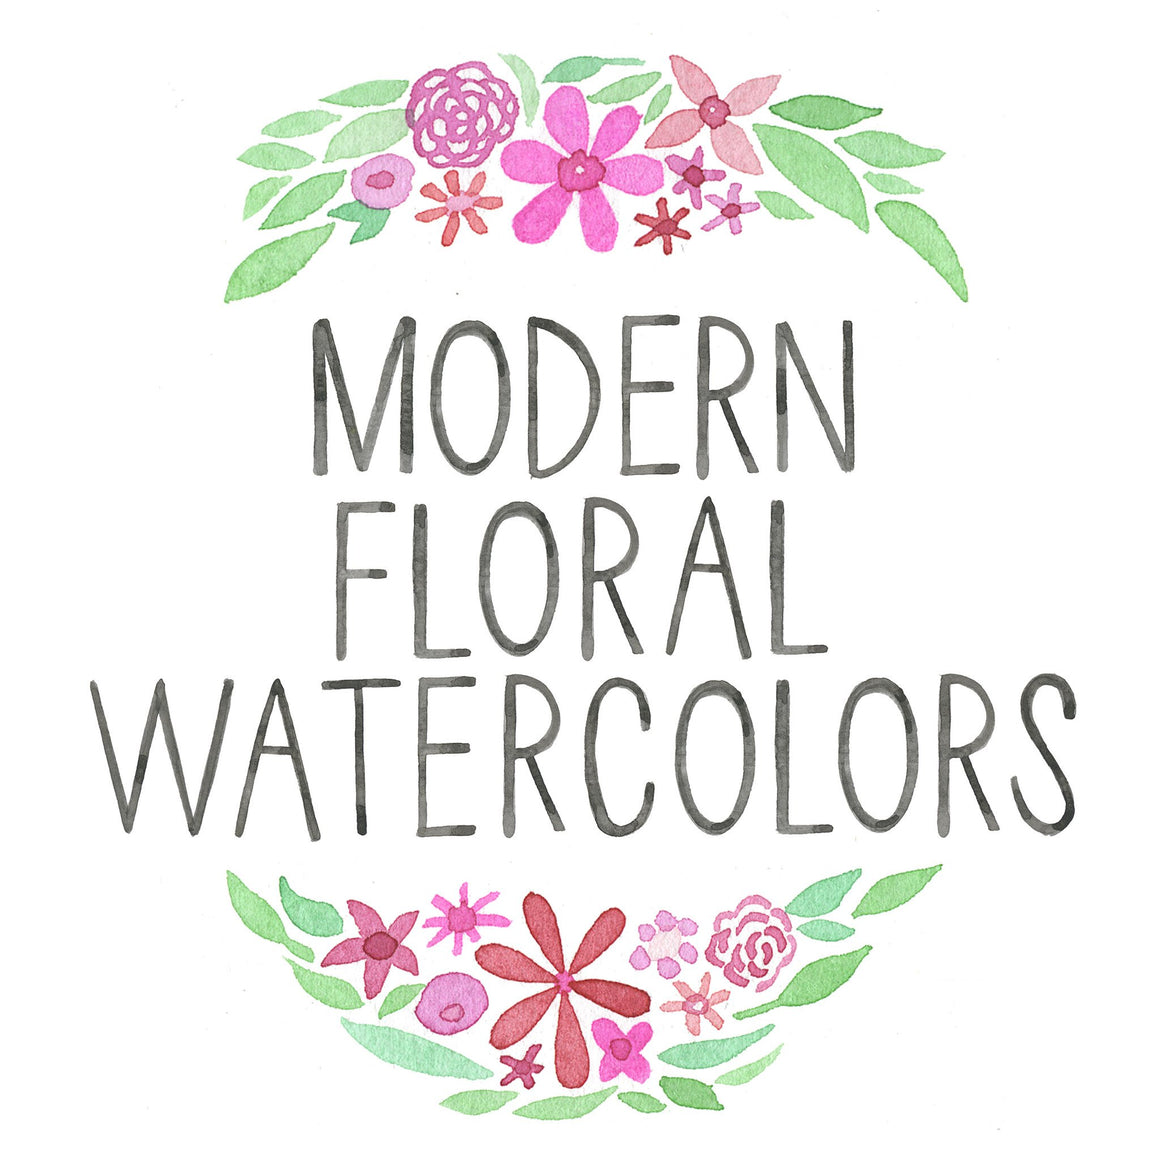 January 22nd Modern Floral Watercolors